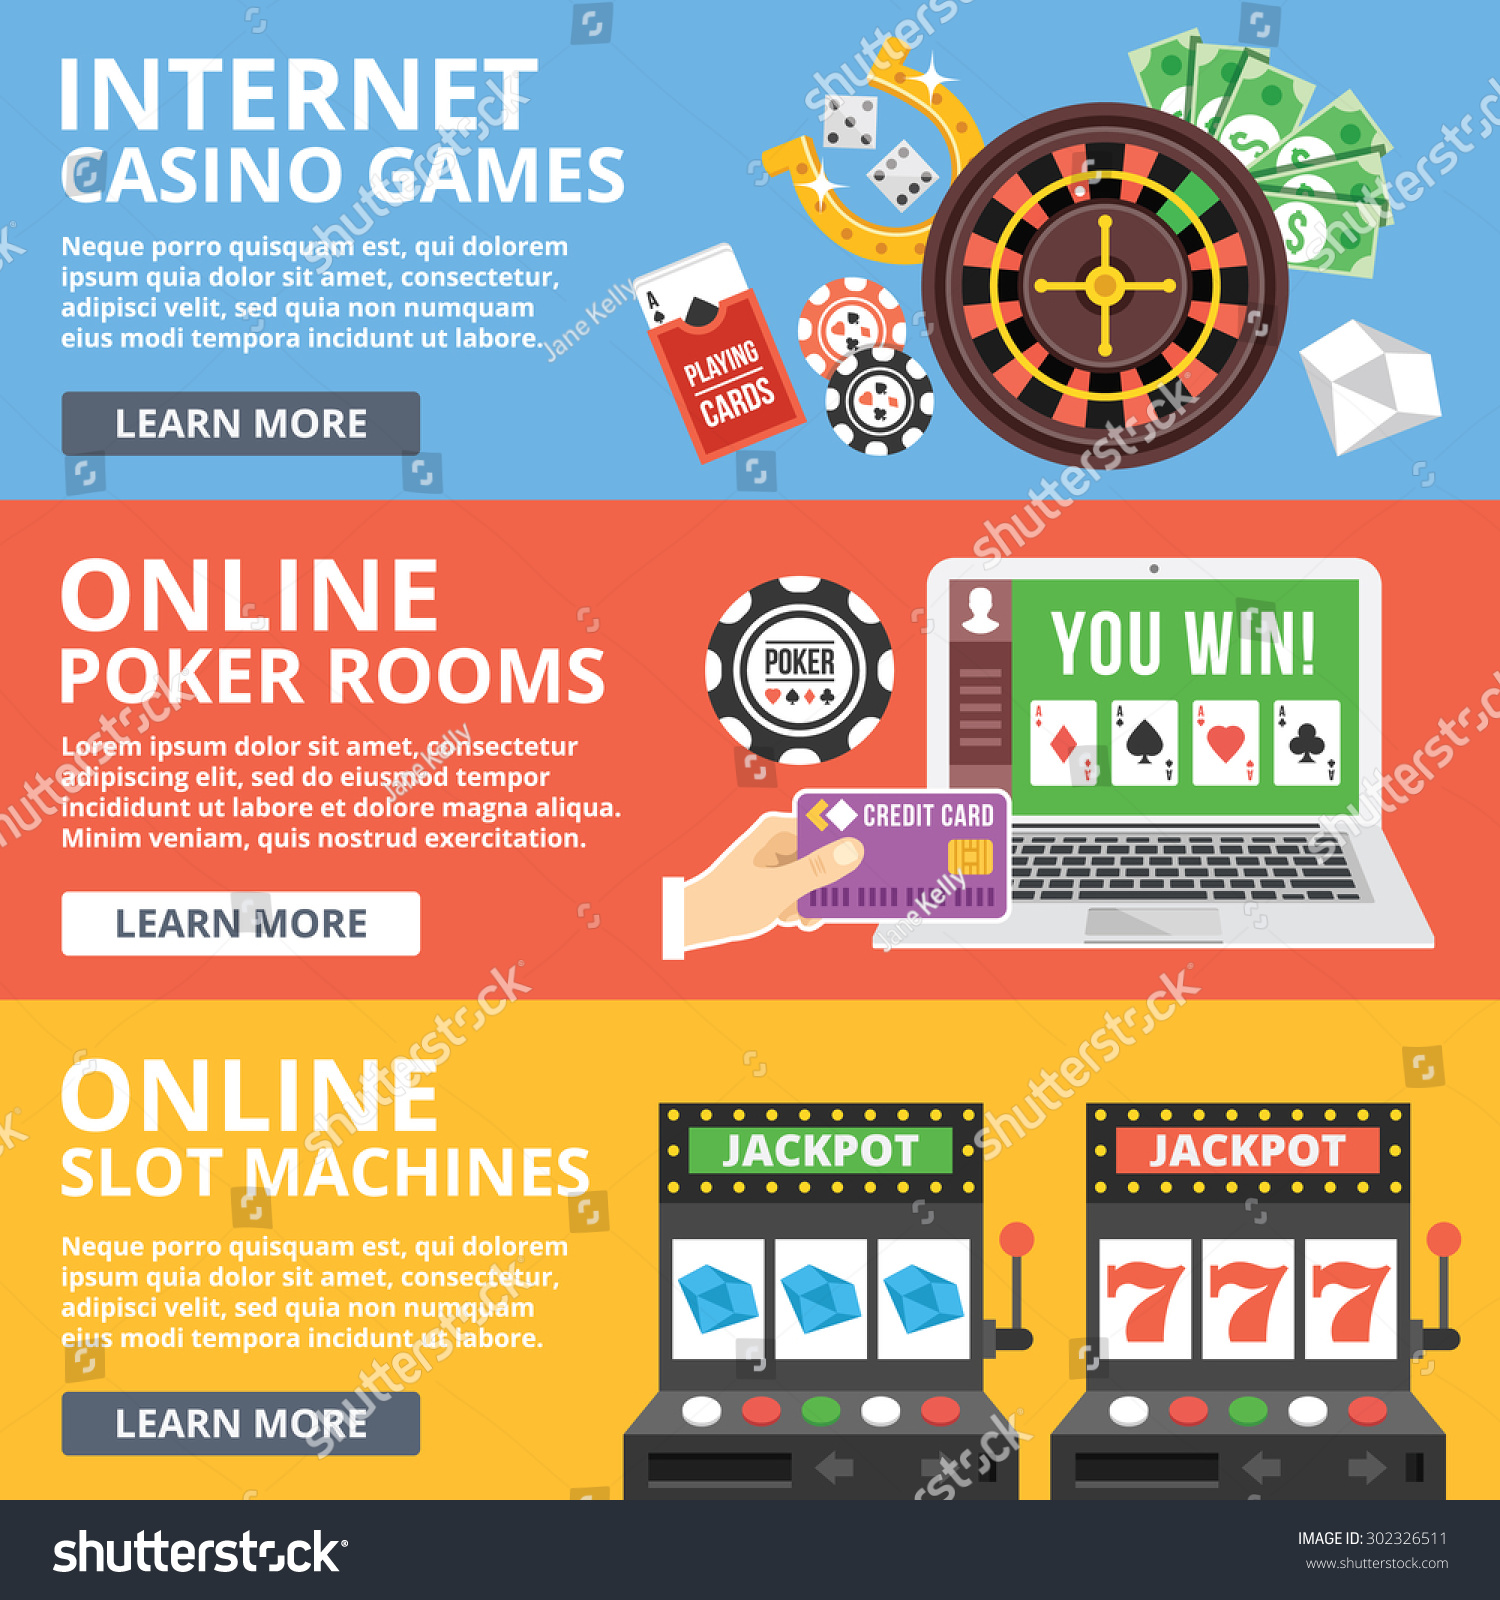 Free non casino web games online treatment for problem gambling